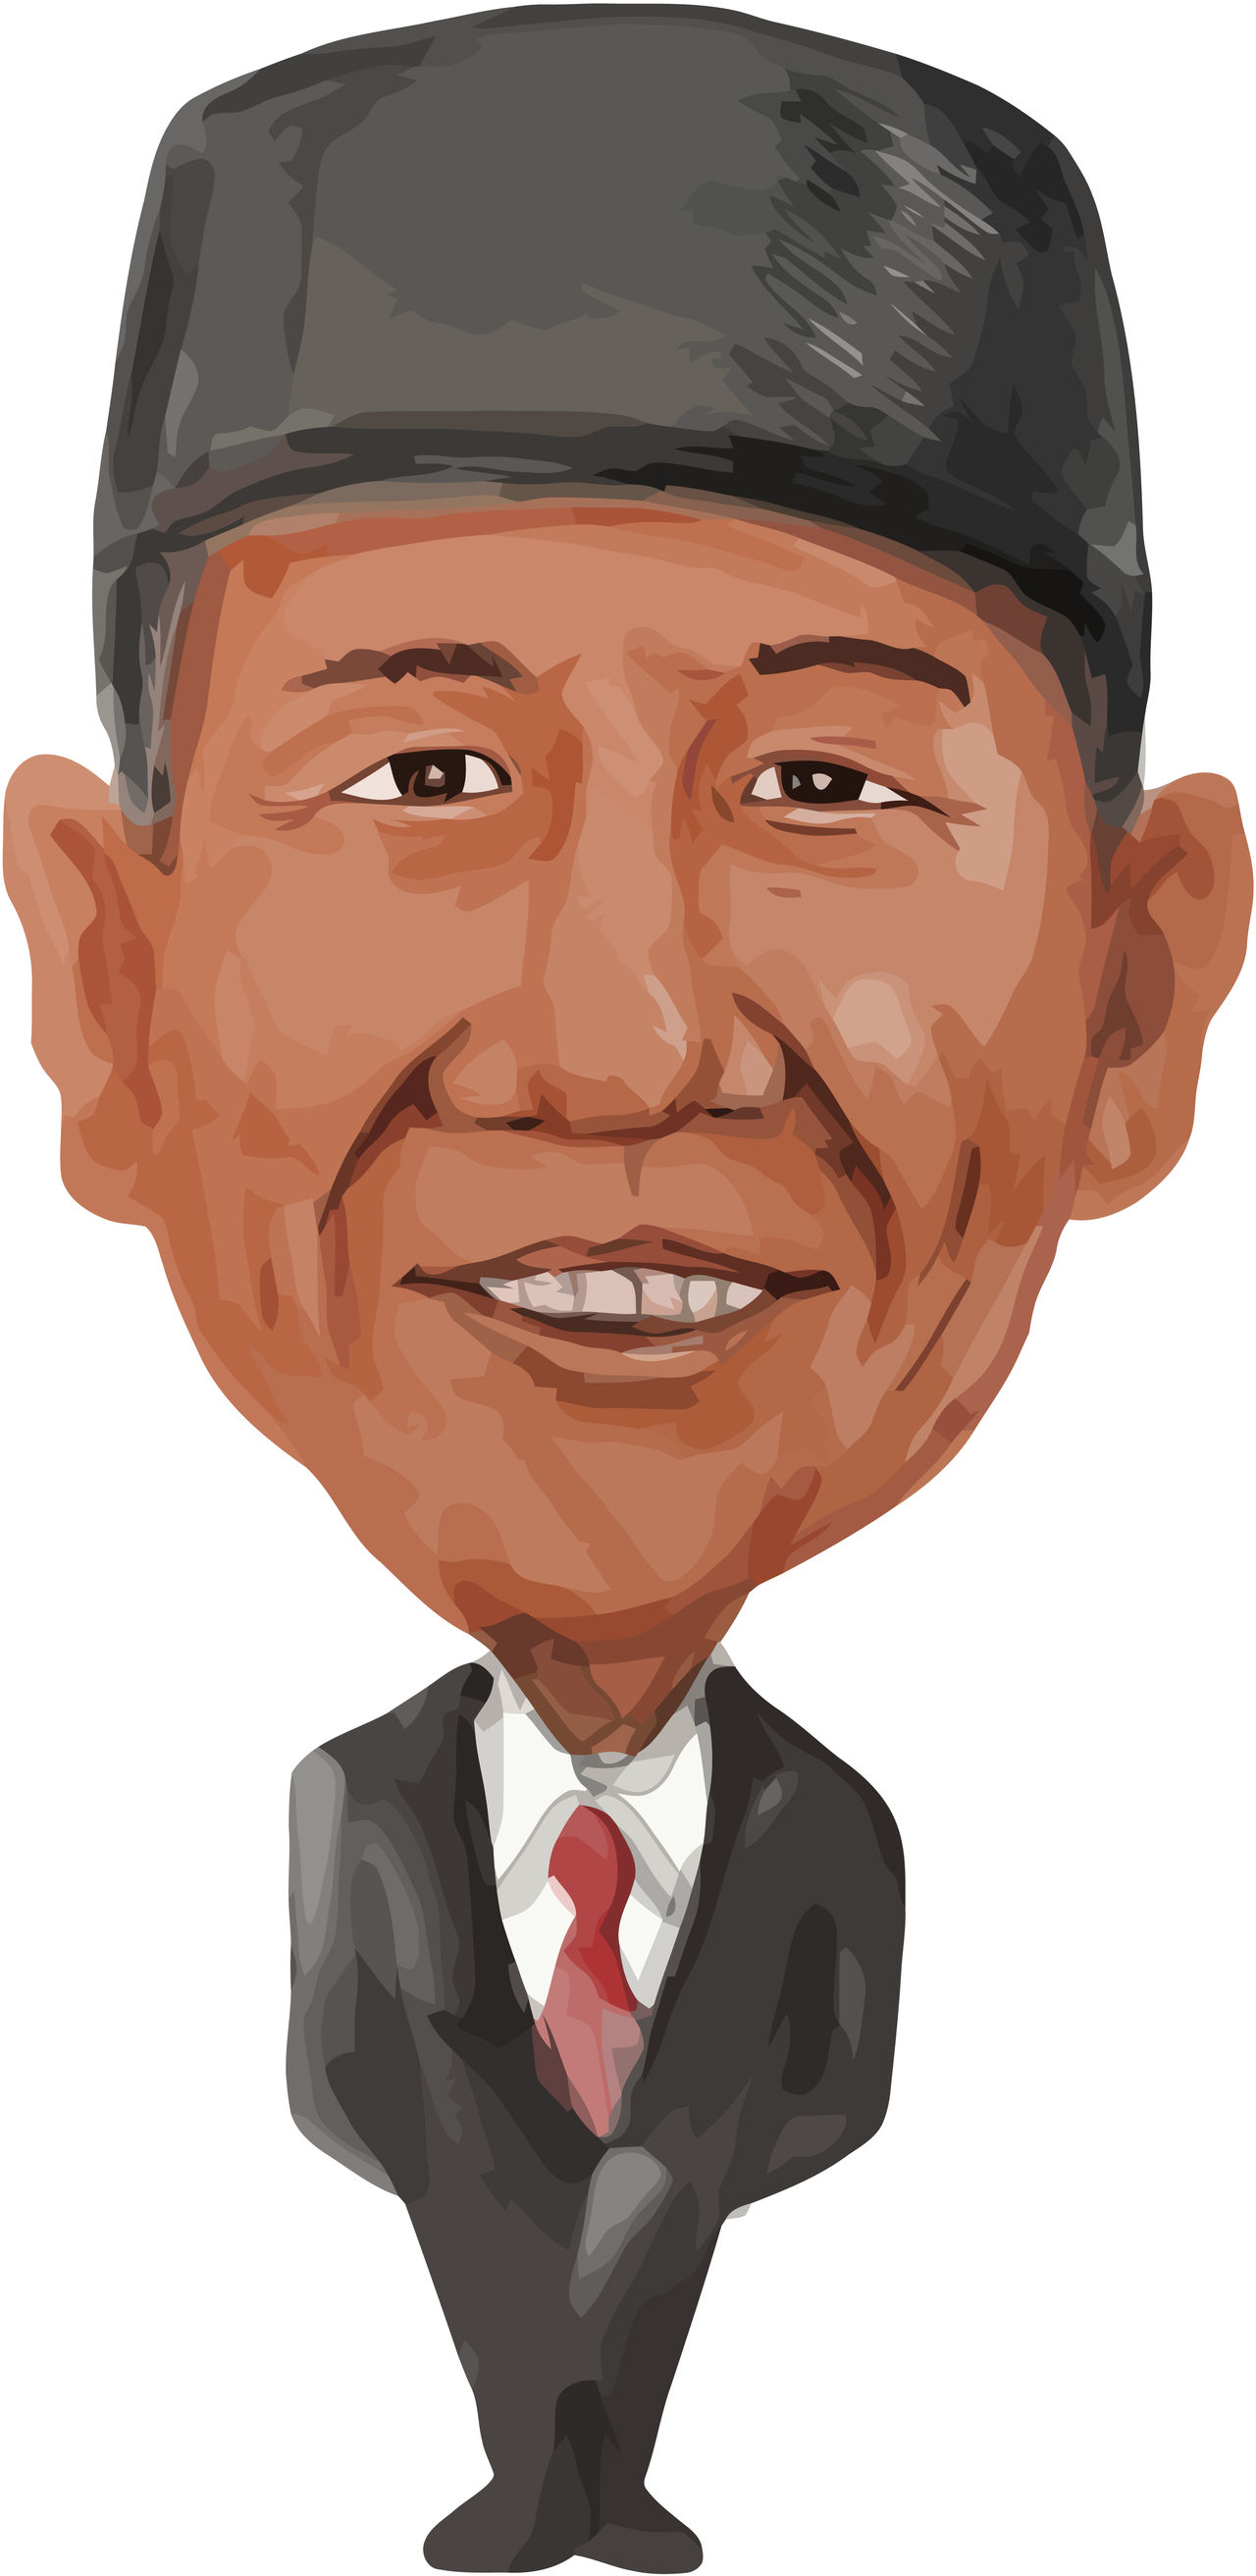 Water color caricature illustration of the Prime Minister of Indonesia, Joko Widodo also known as Jokowi facing front done in cartoon style. Caricature Cartoon Front Human Face INDONESIA Joko Widodo Jokowi One Person Prime Minister Water Color White Background